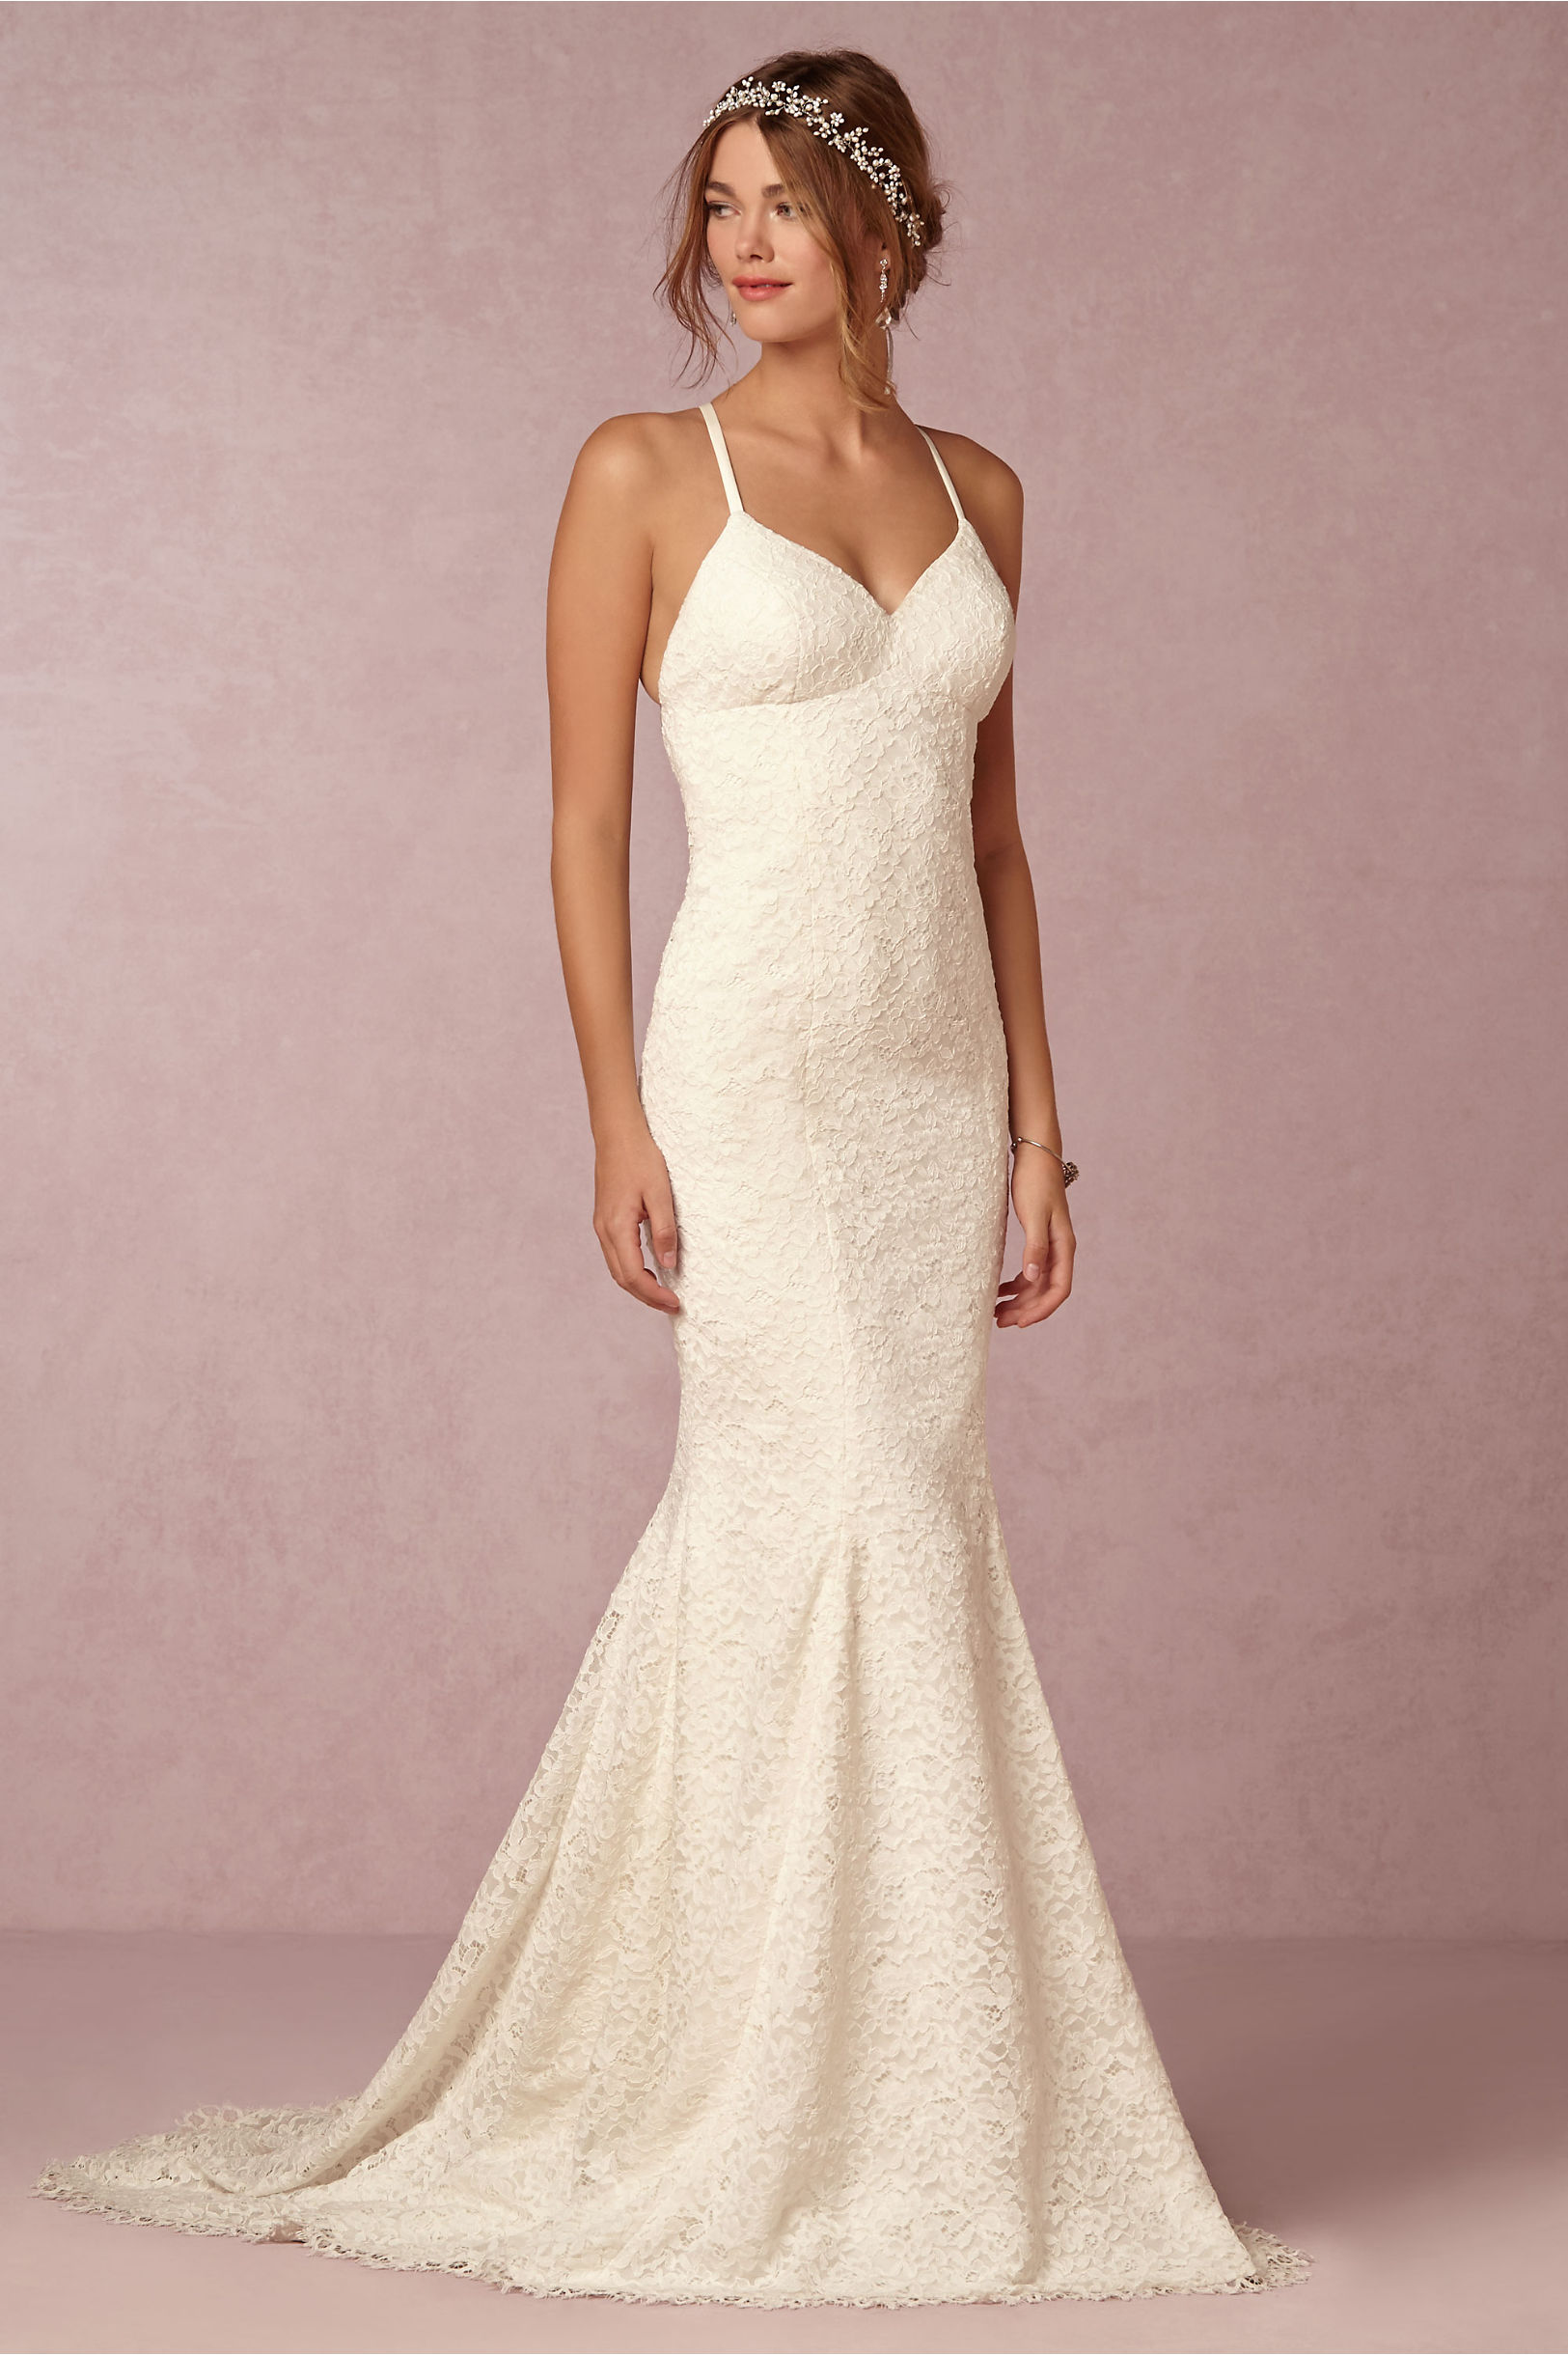 Violet gown ivory in new noteworthy bhldn ivory violet gown bhldn junglespirit Choice Image